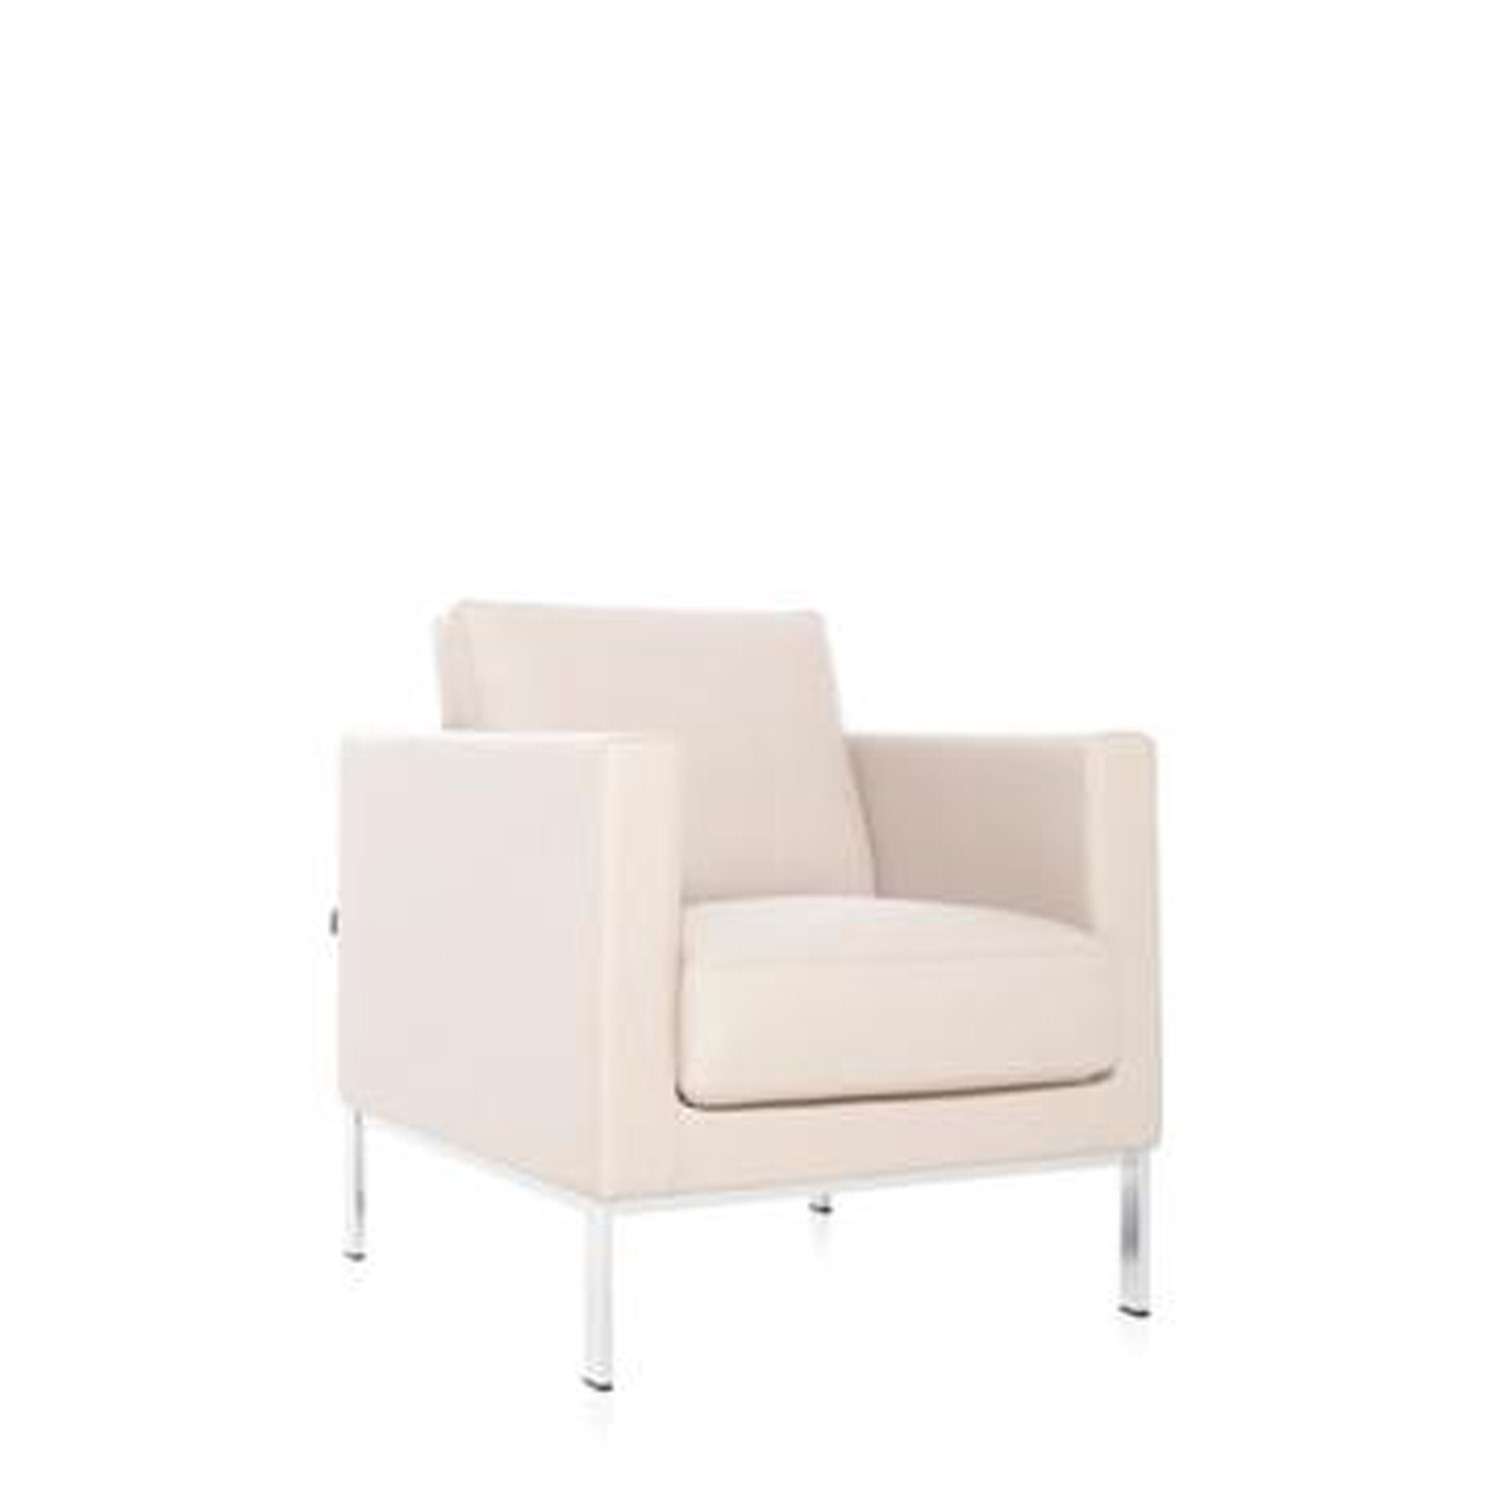 Avenue Armchair from ICF Spa